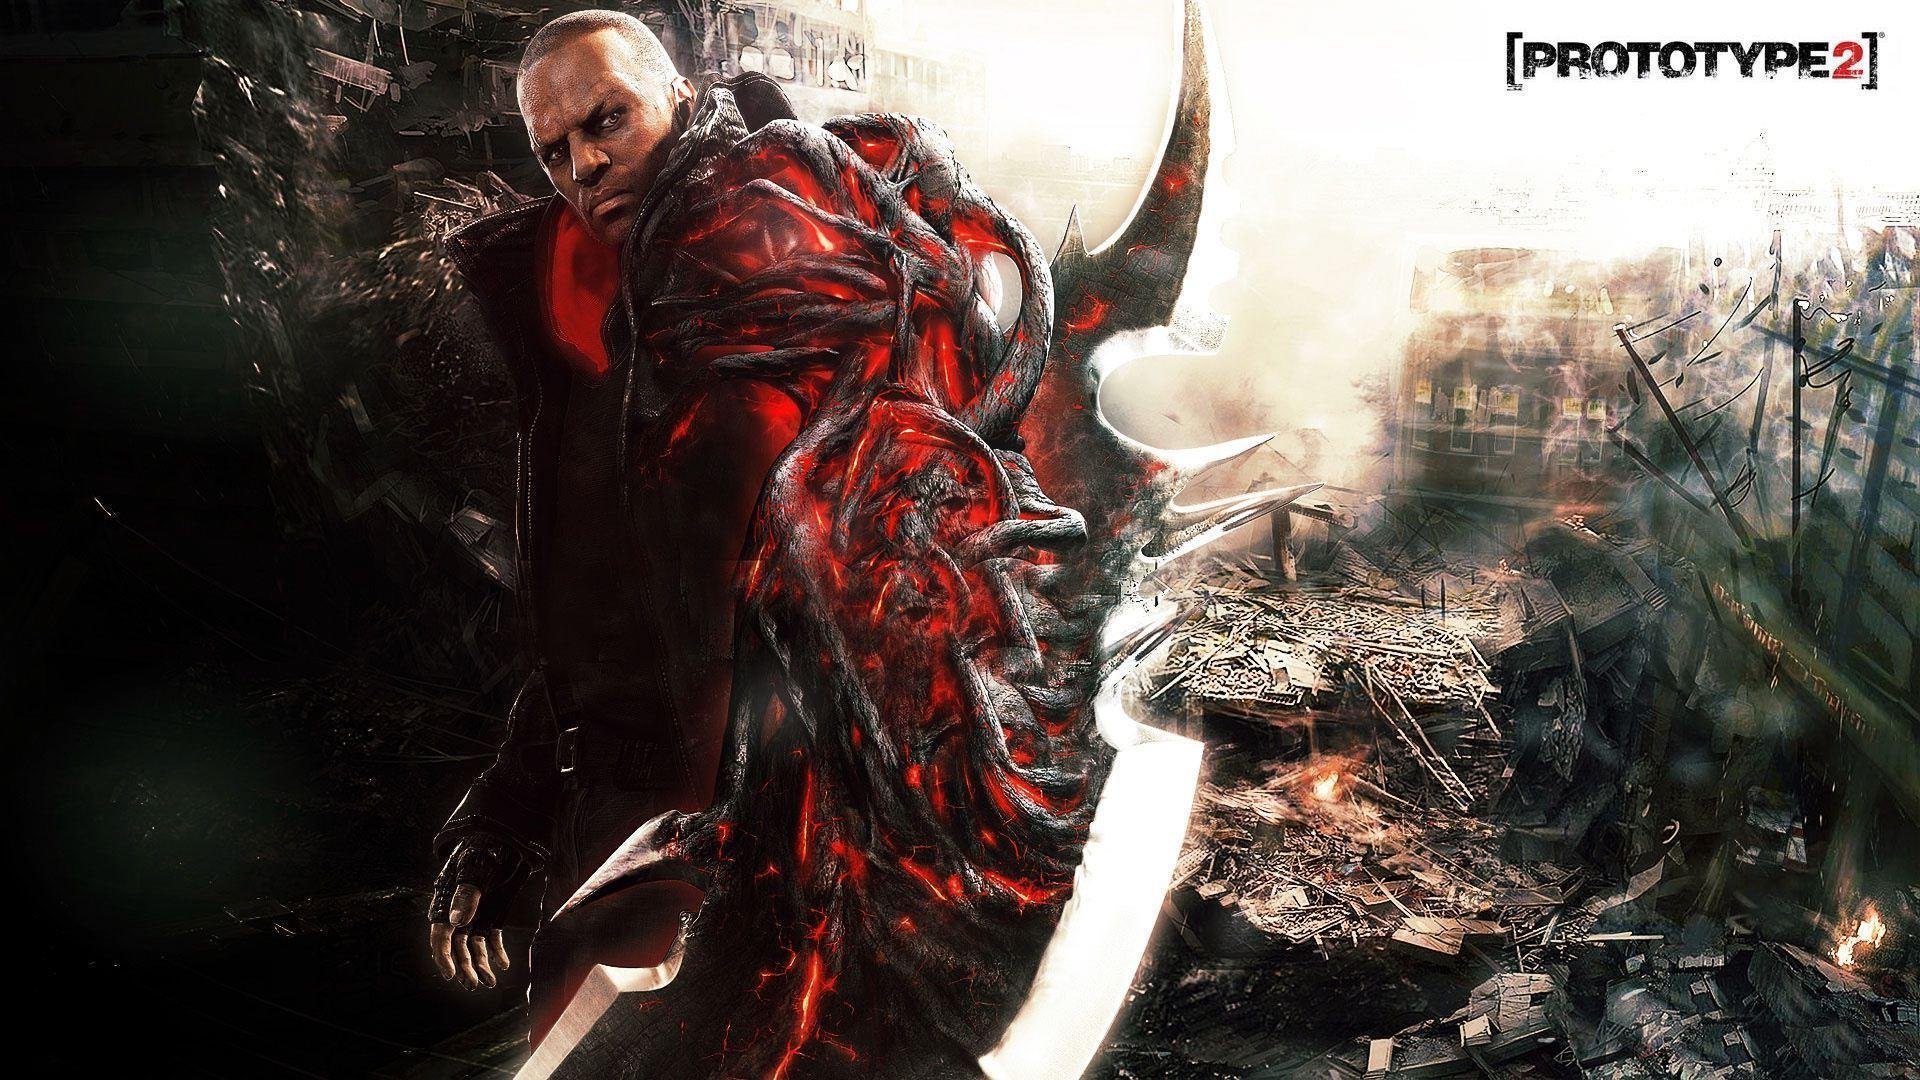 prototype 2 wallpapers - wallpaper cave